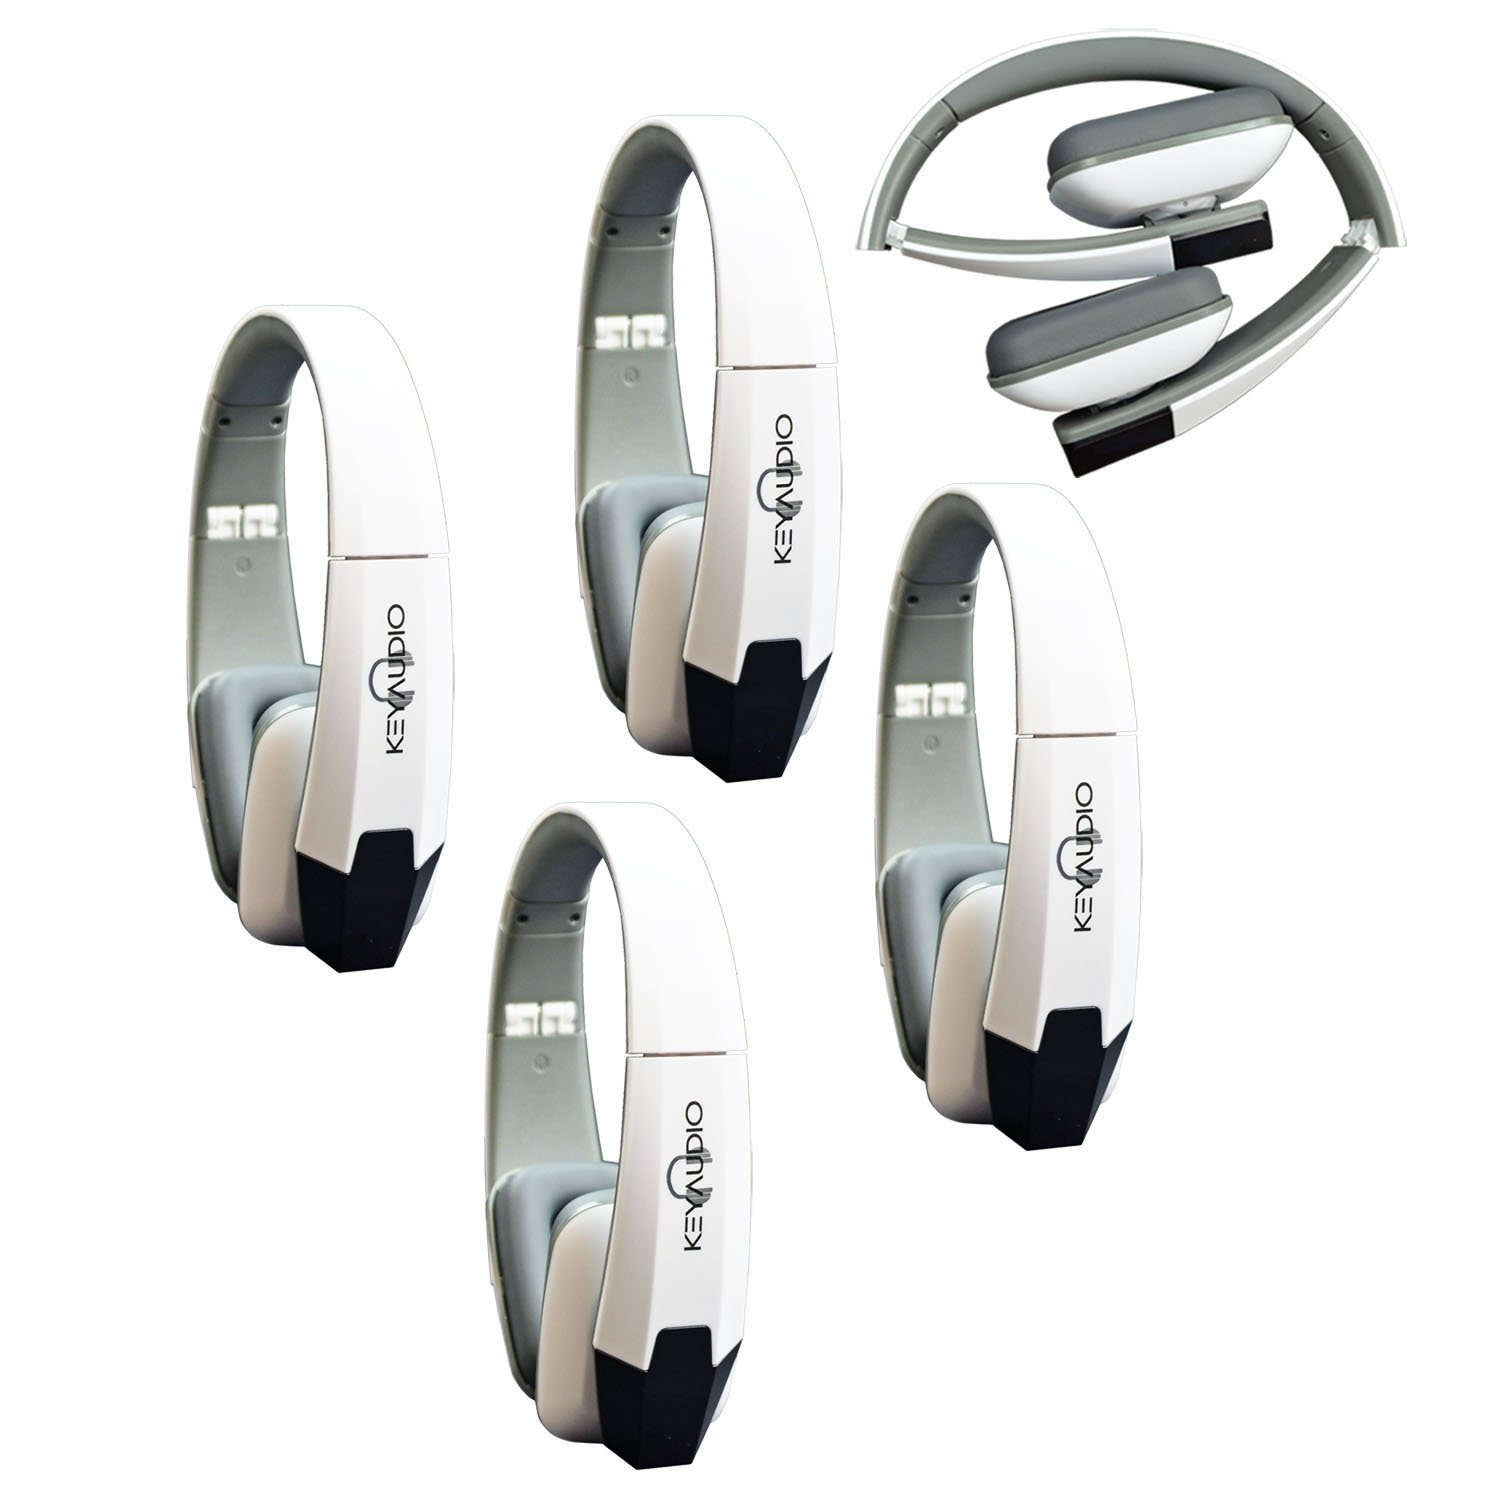 Key Audio 4 White Two Channel Folding Adjustable Universal Rear Entertainment System Infrared Headphone Car TV Video Audio and Listening With Superior Sound Quality